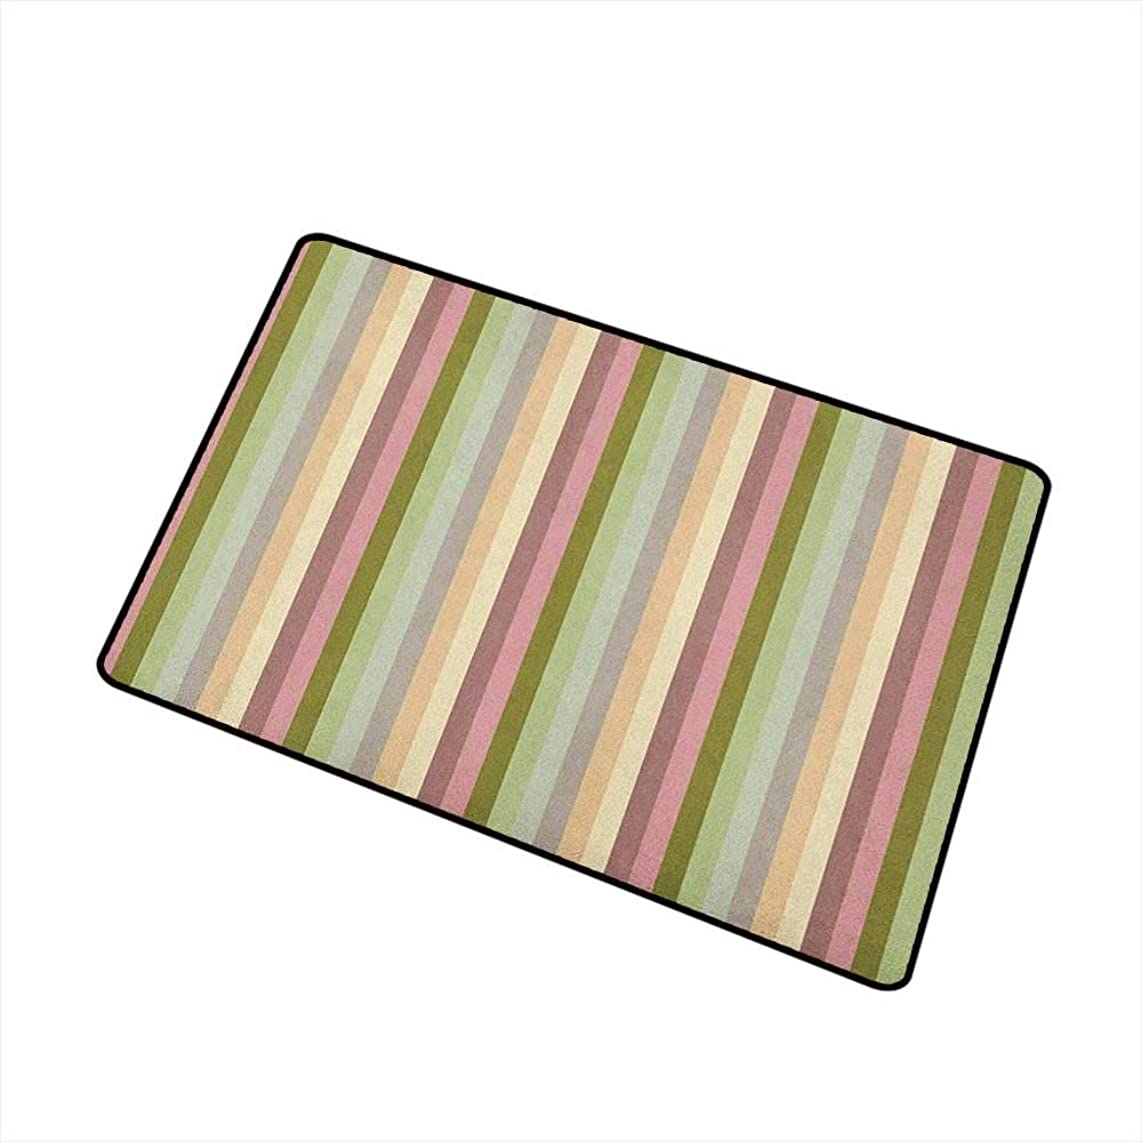 Wang Hai Chuan Stripes Welcome Door mat Colorful Pattern with Pastel Colored Bands Vertically Aligned Abstract Illustration Door mat is odorless and Durable W29.5 x L39.4 Inch Multicolor